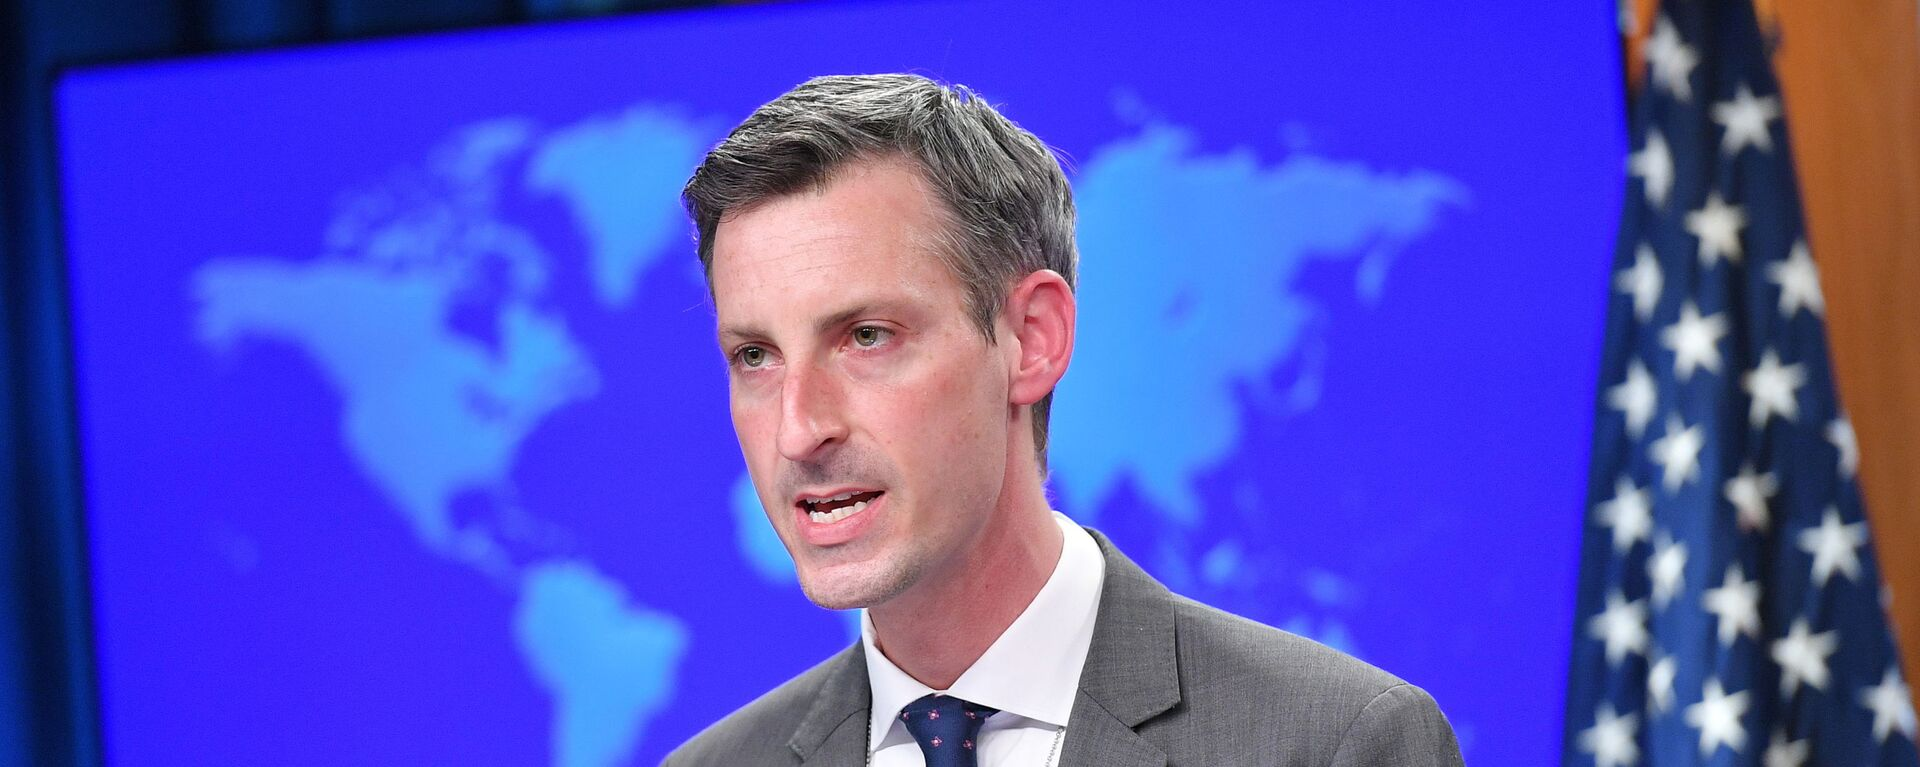 U.S. State Department spokesman Ned Price speaks during the release of the 2020 Country Reports on Human Rights Practices at the State Department in Washington, DC, U.S., March 30, 2021. - Sputnik International, 1920, 09.09.2021